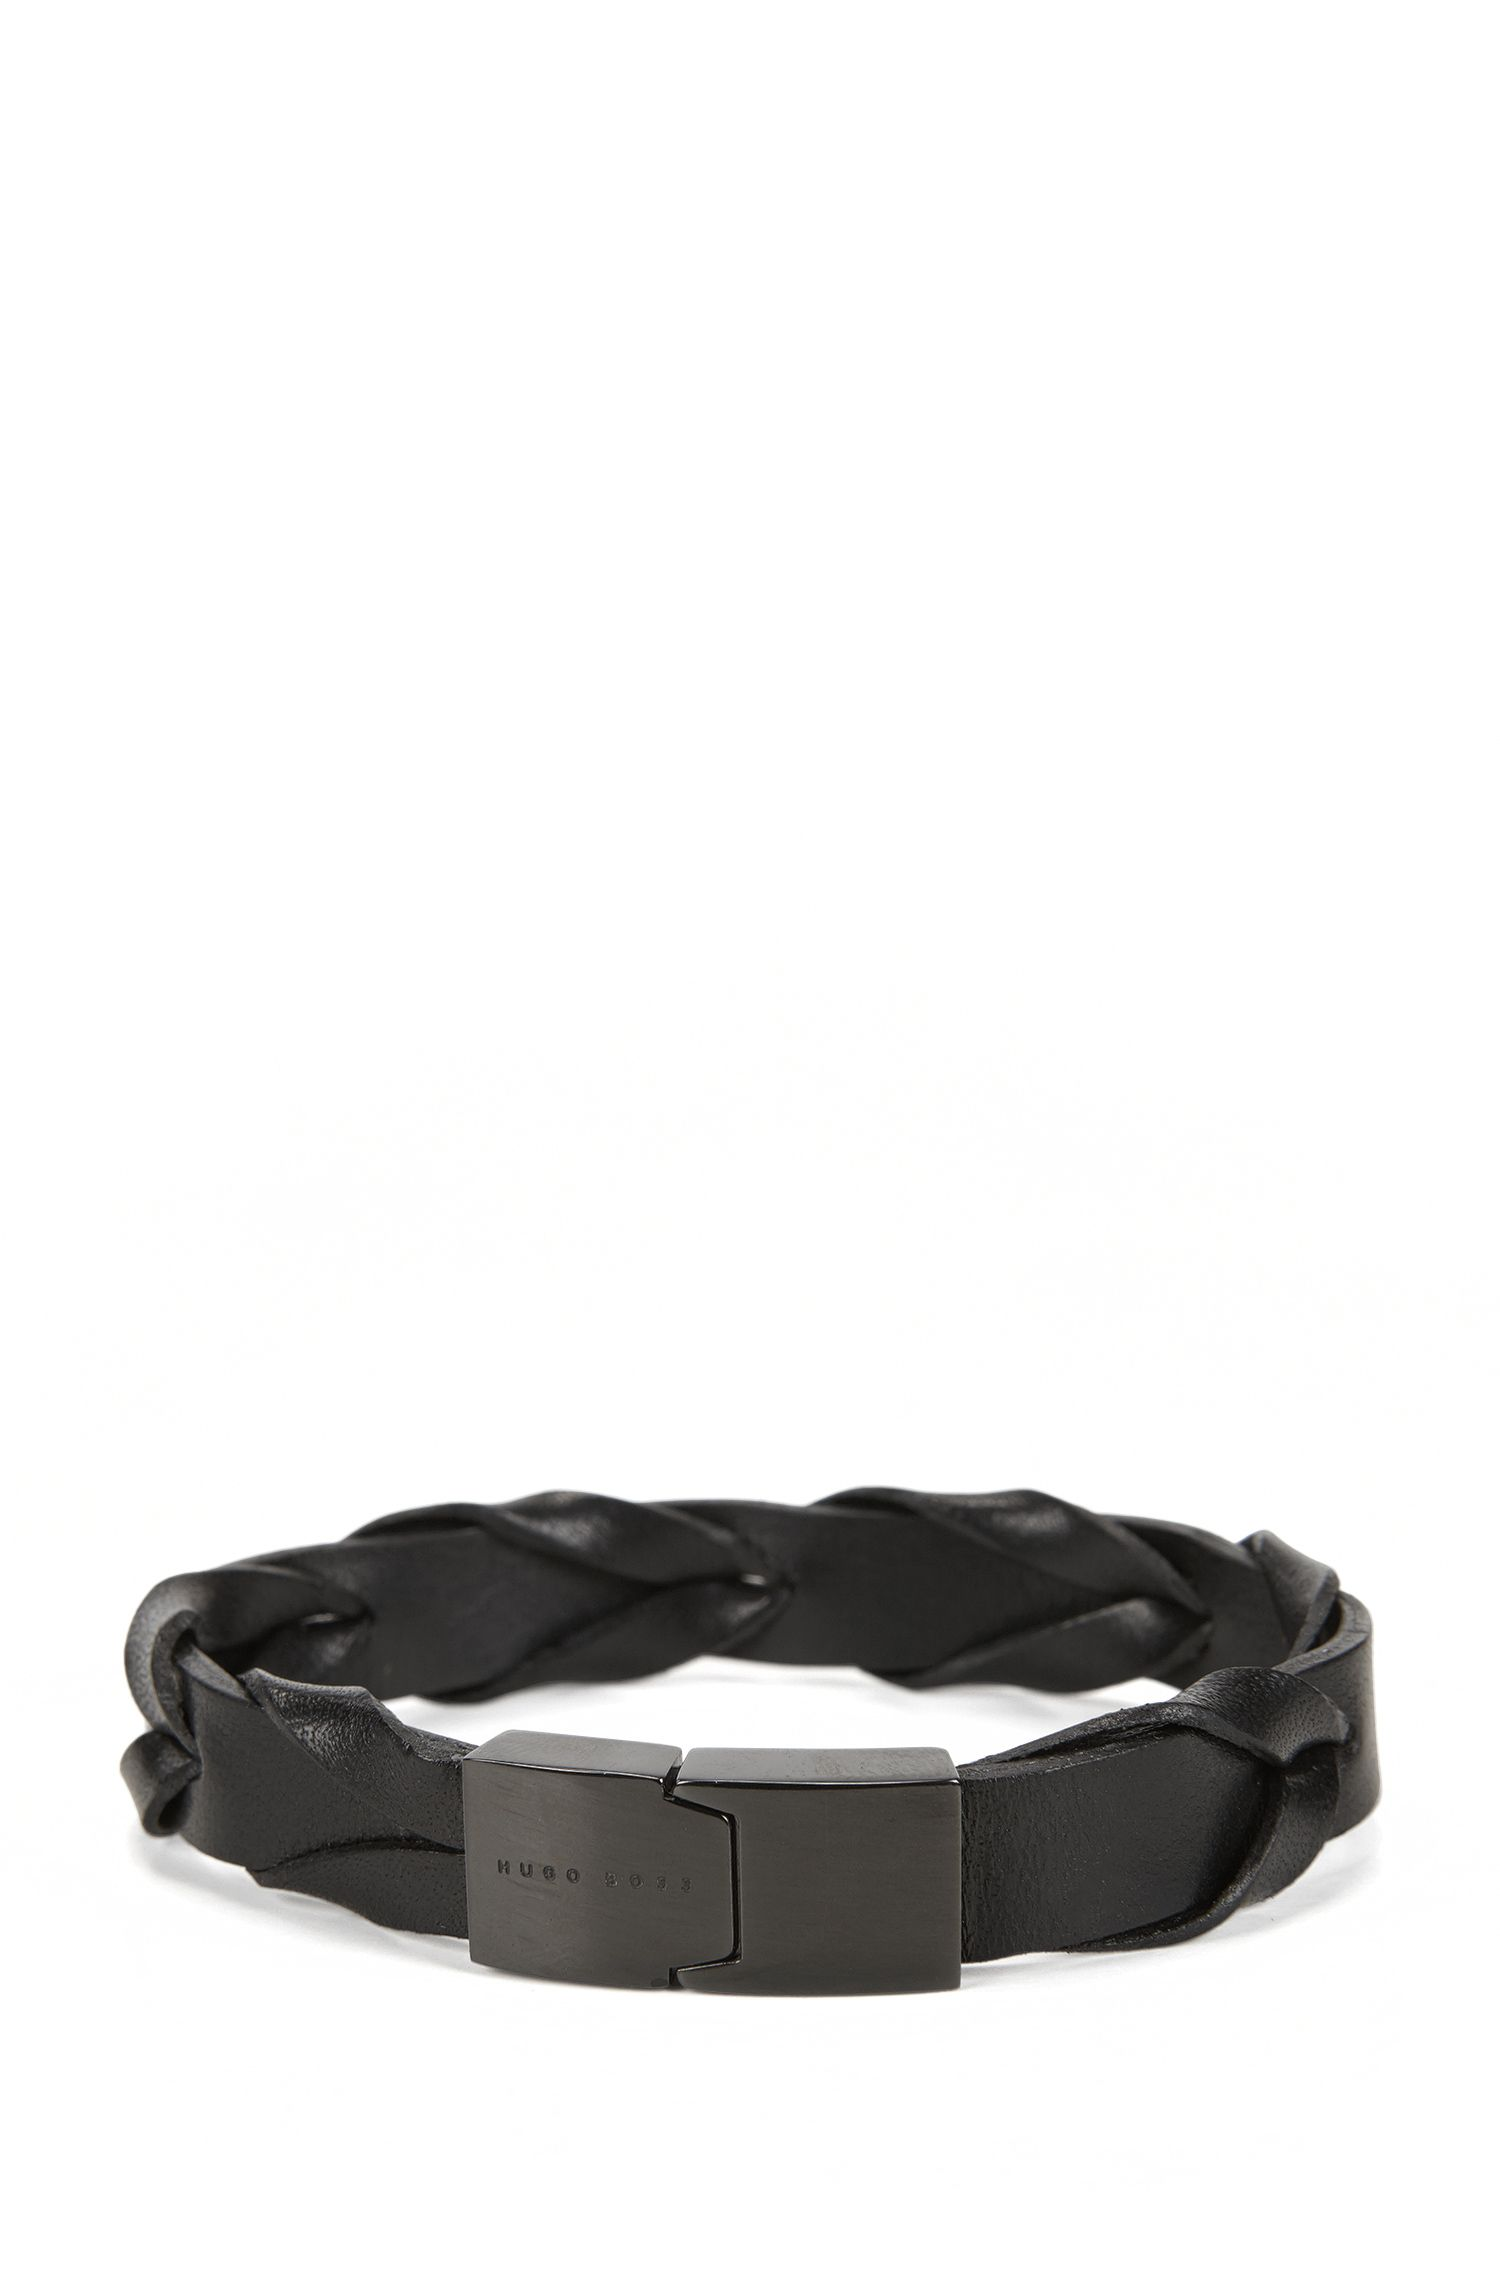 Woven leather bracelet with magnet closure